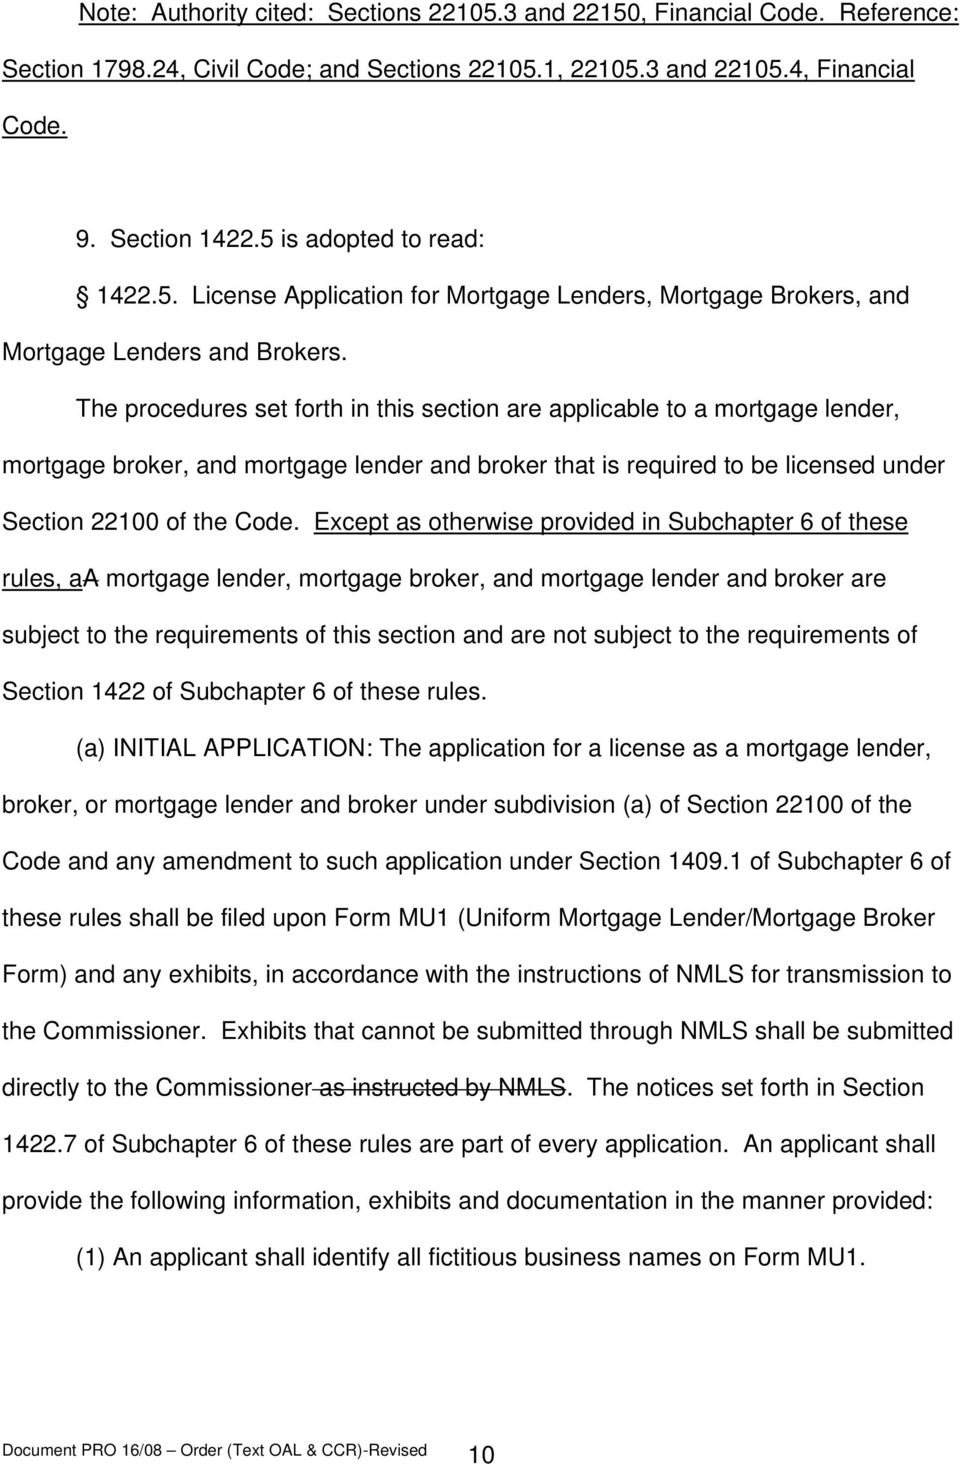 The procedures set forth in this section are applicable to a mortgage lender, mortgage broker, and mortgage lender and broker that is required to be licensed under Section 22100 of the Code.